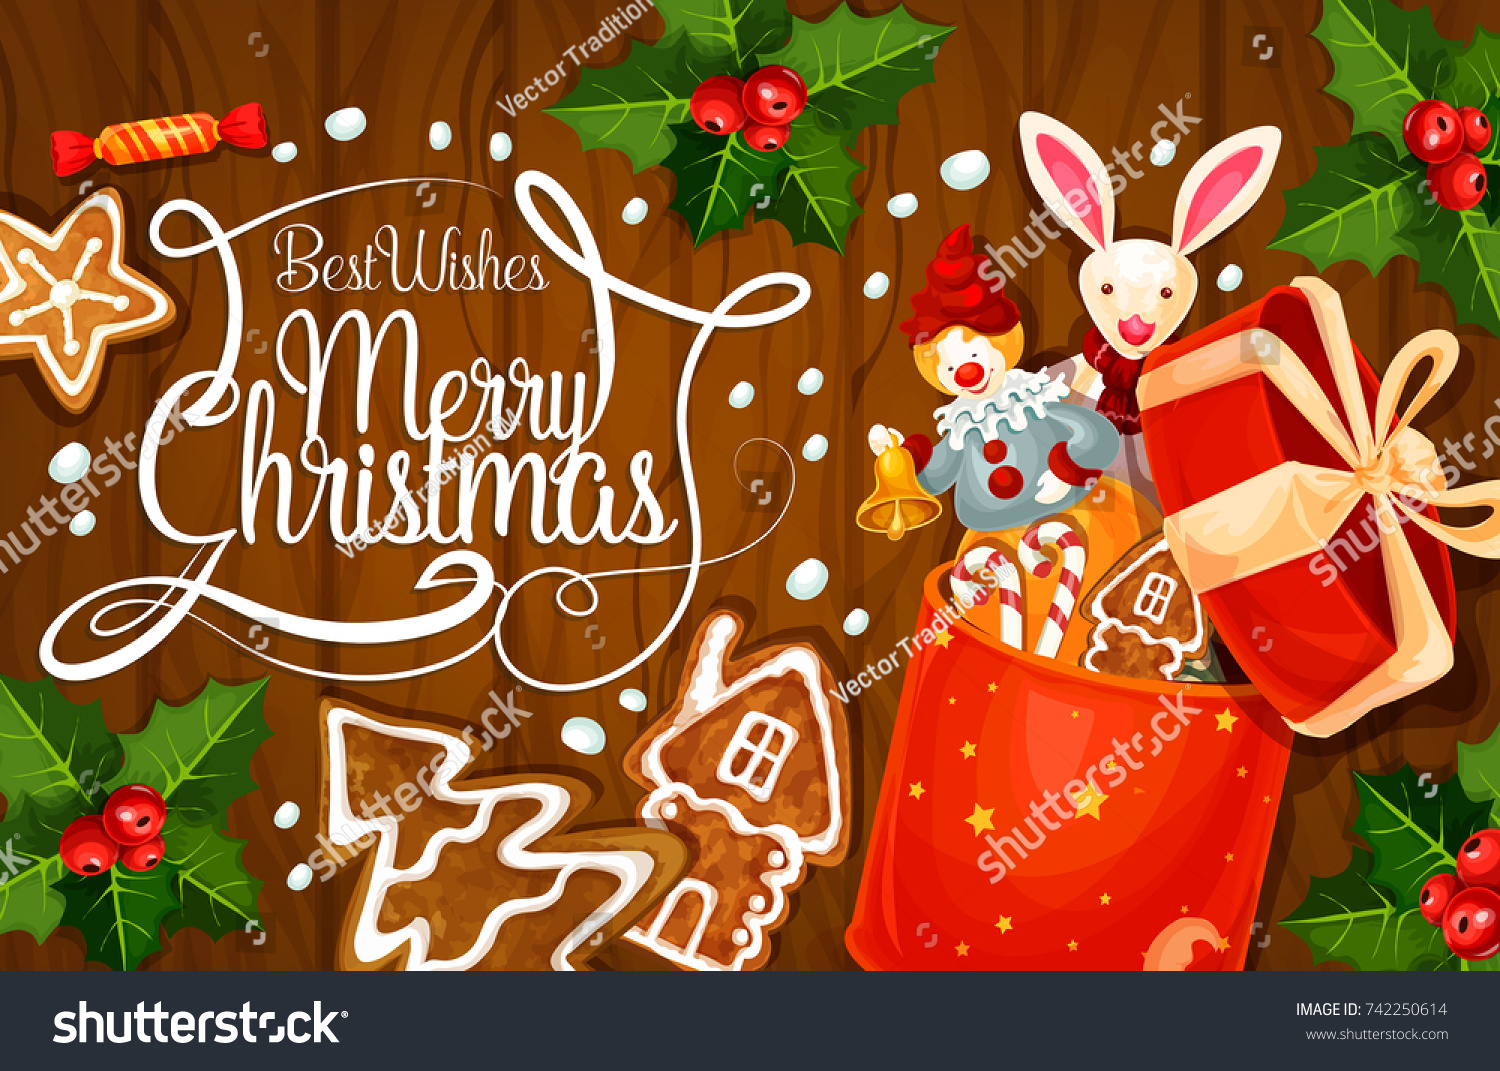 Merry Christmas Greeting Card Design Happy Stock Vector 742250614